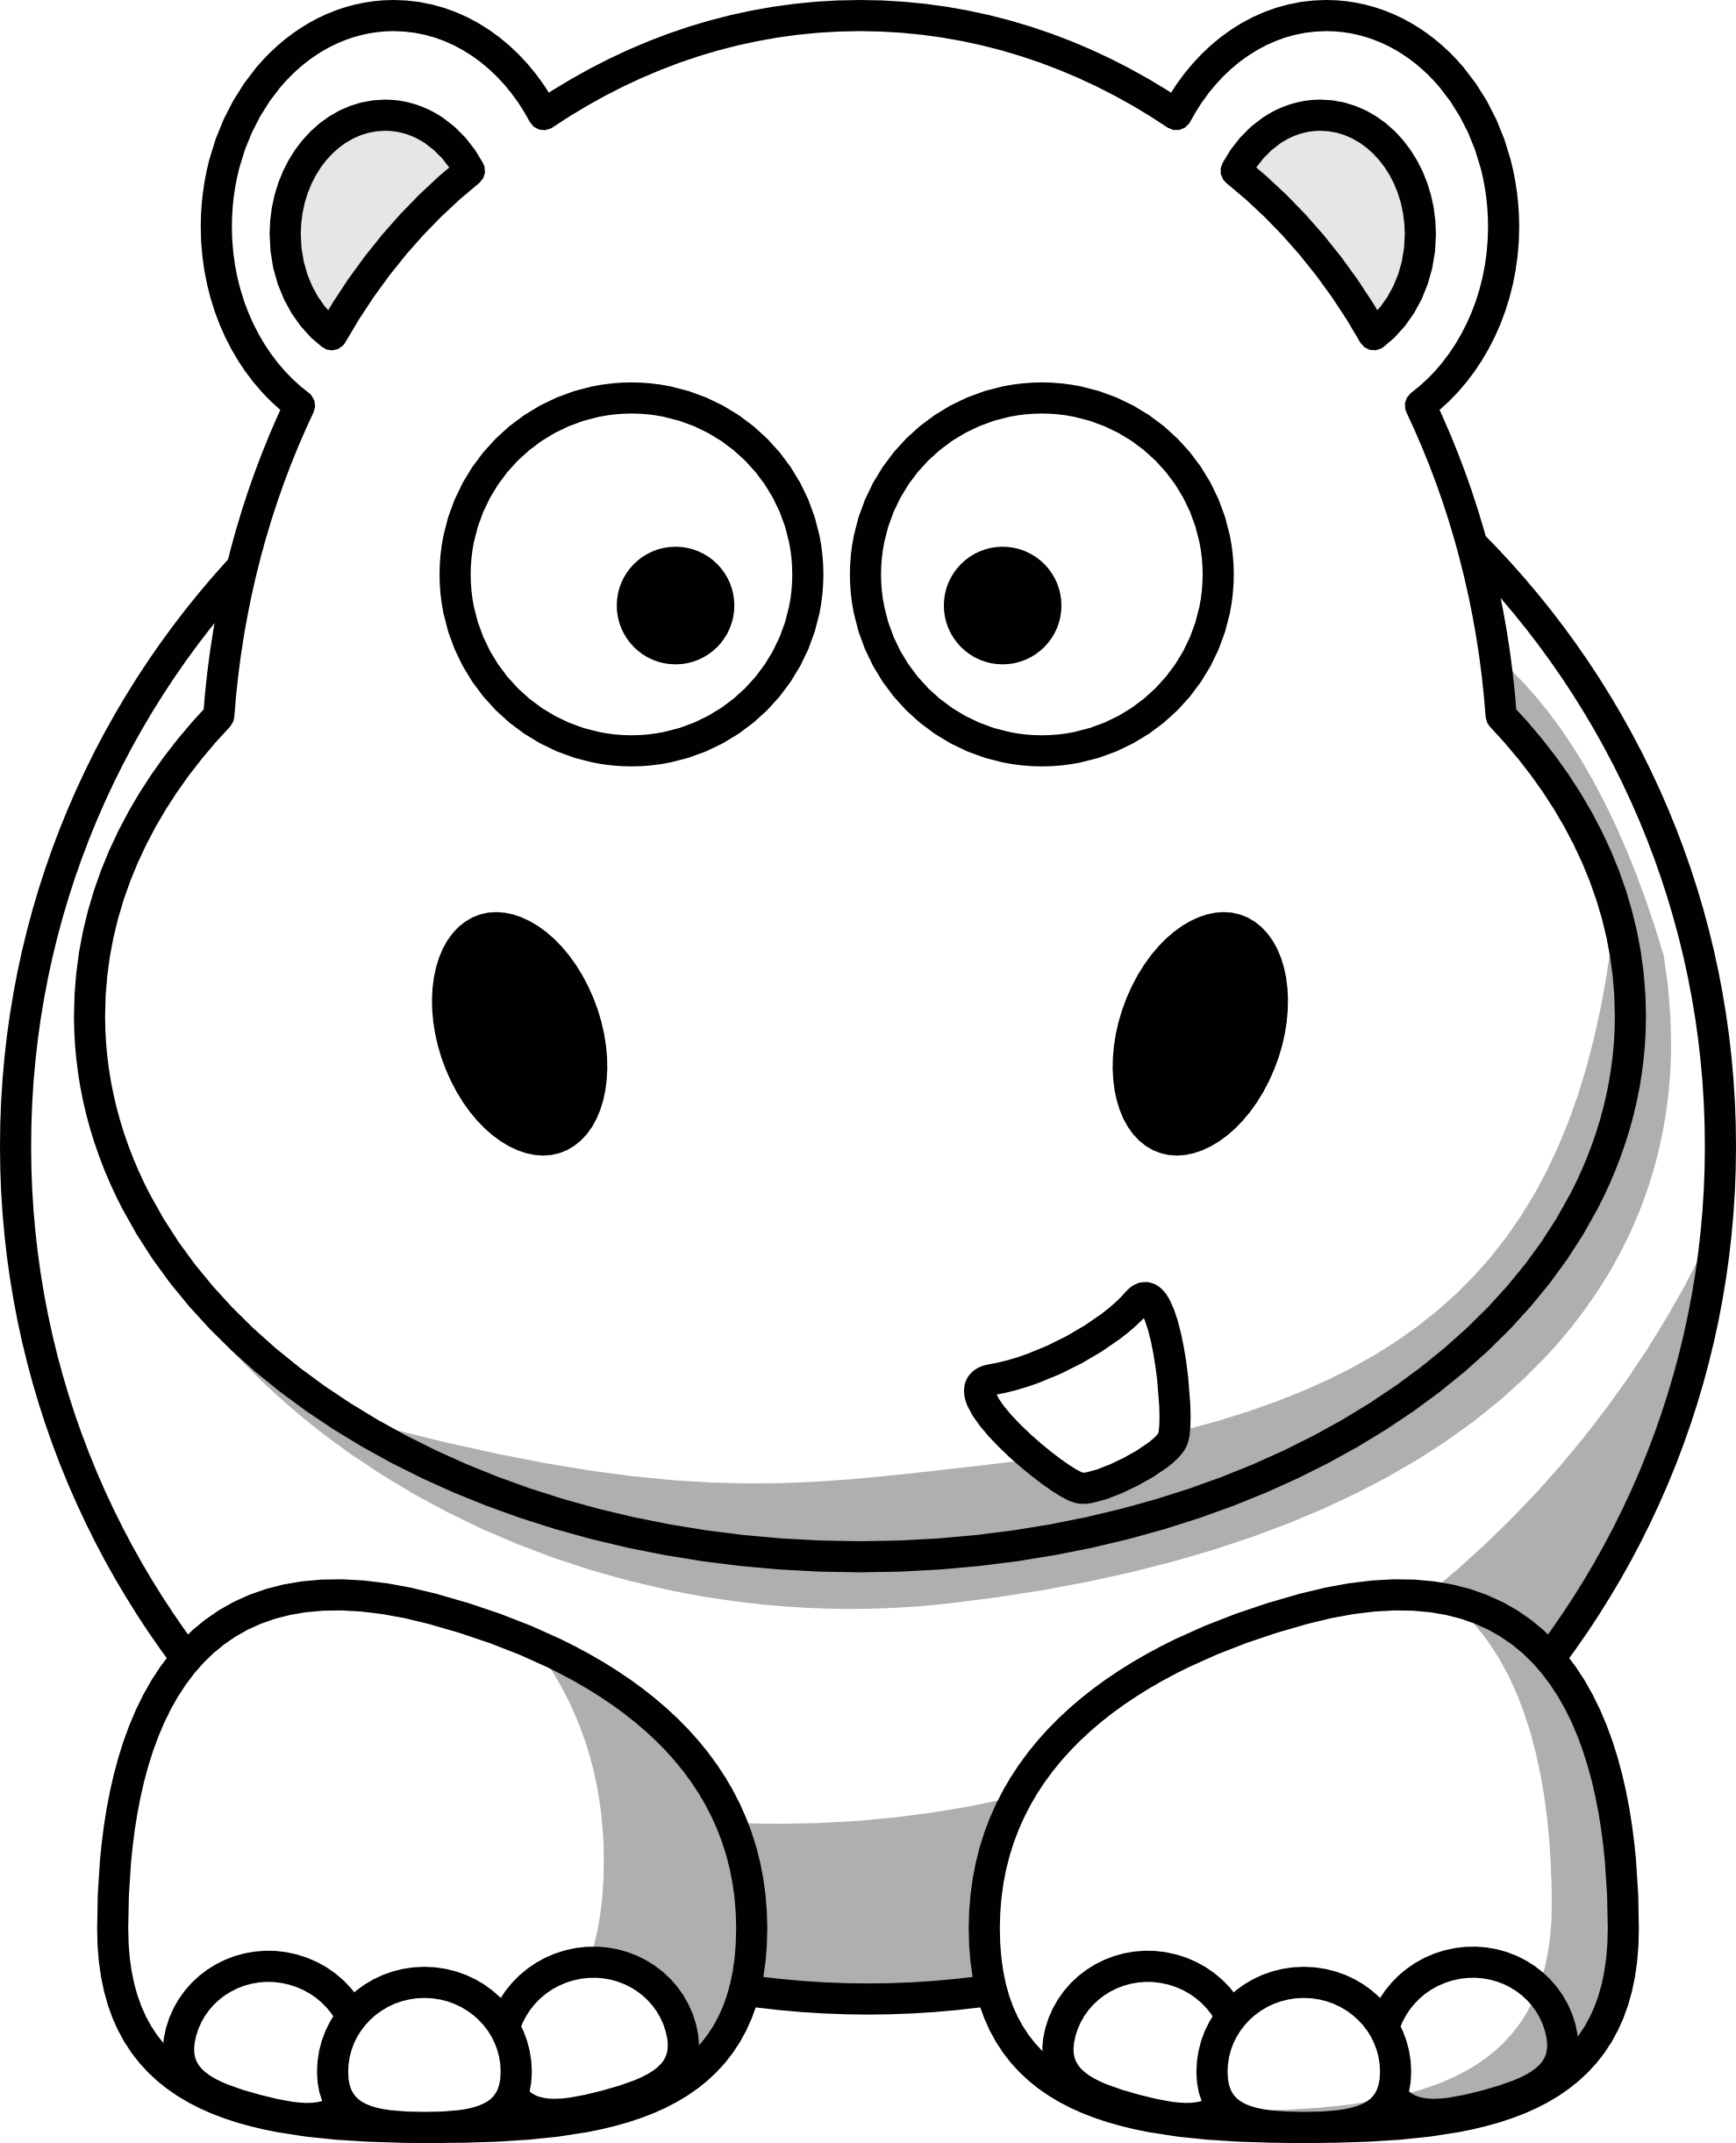 Killer drawing coloring page. Free cute baby hippo